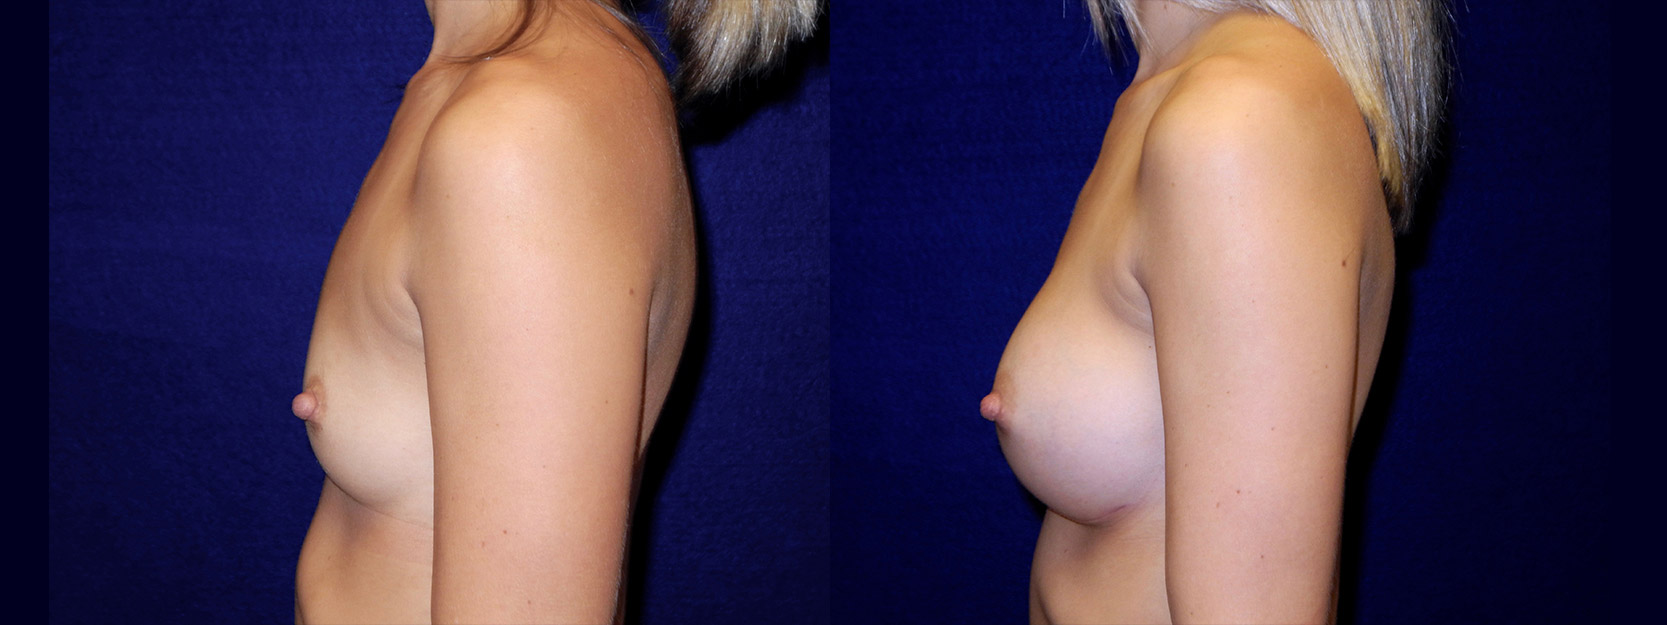 Left Profile View - Breast Augmentation - Silicone Implants